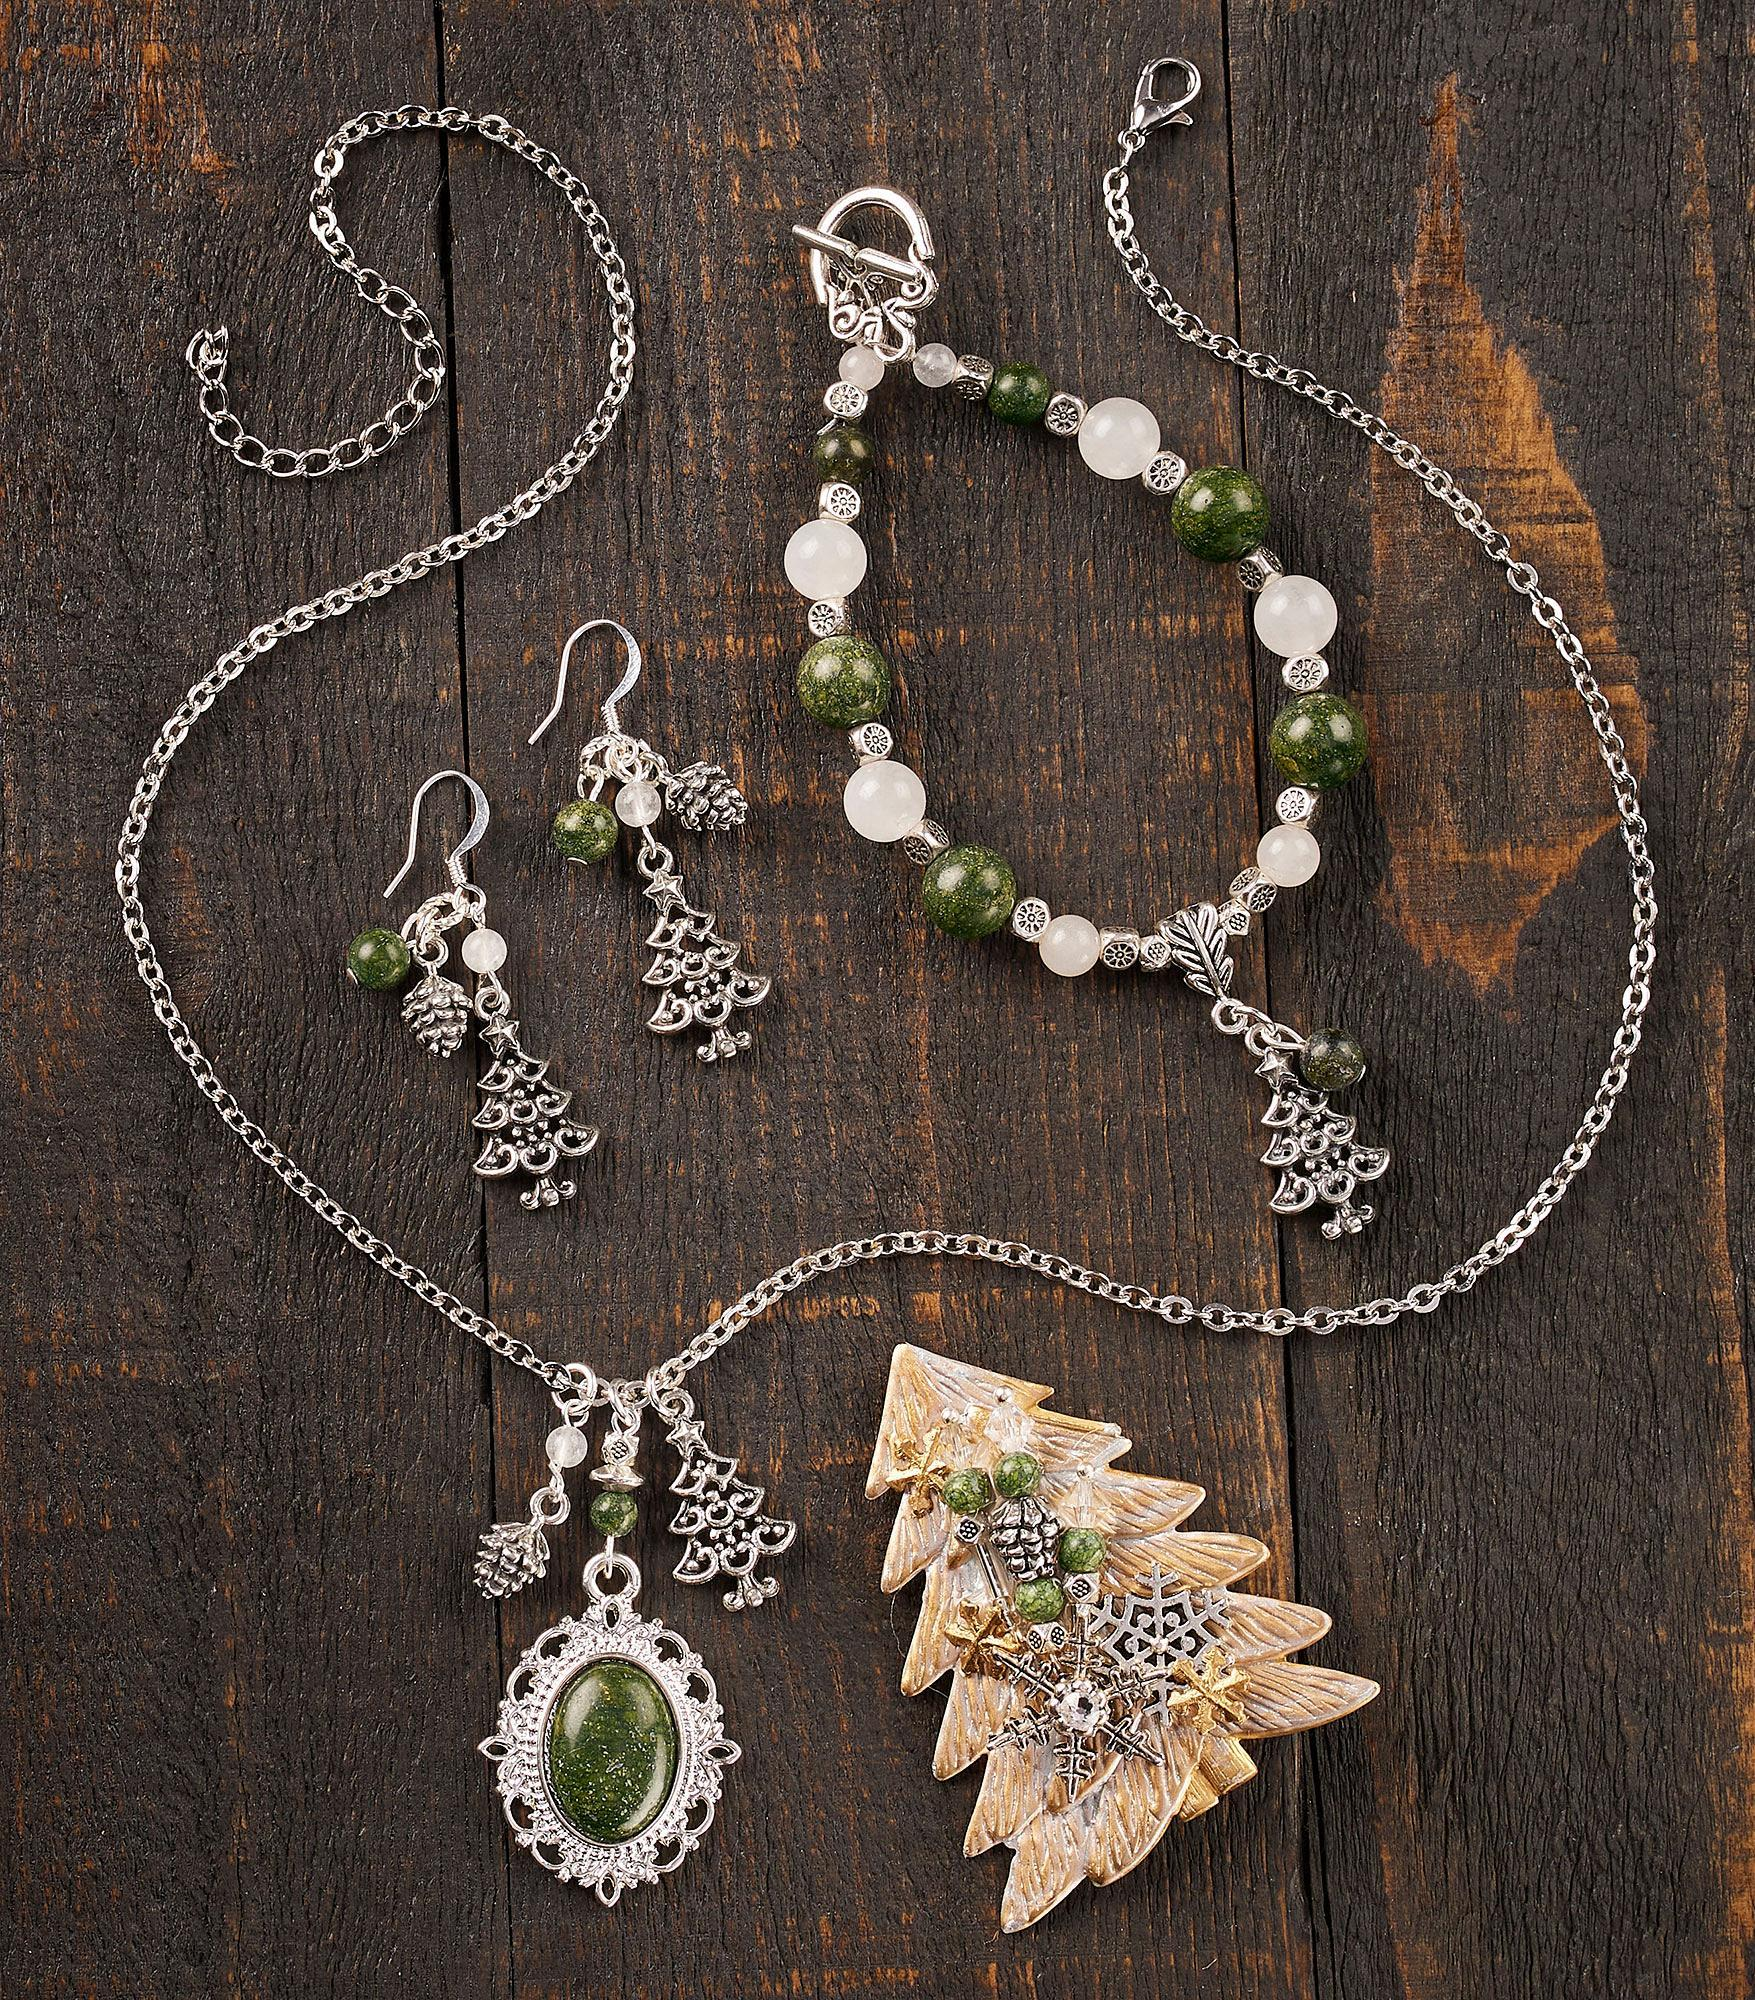 Winter Pines Necklace, Earrings & Bracelet